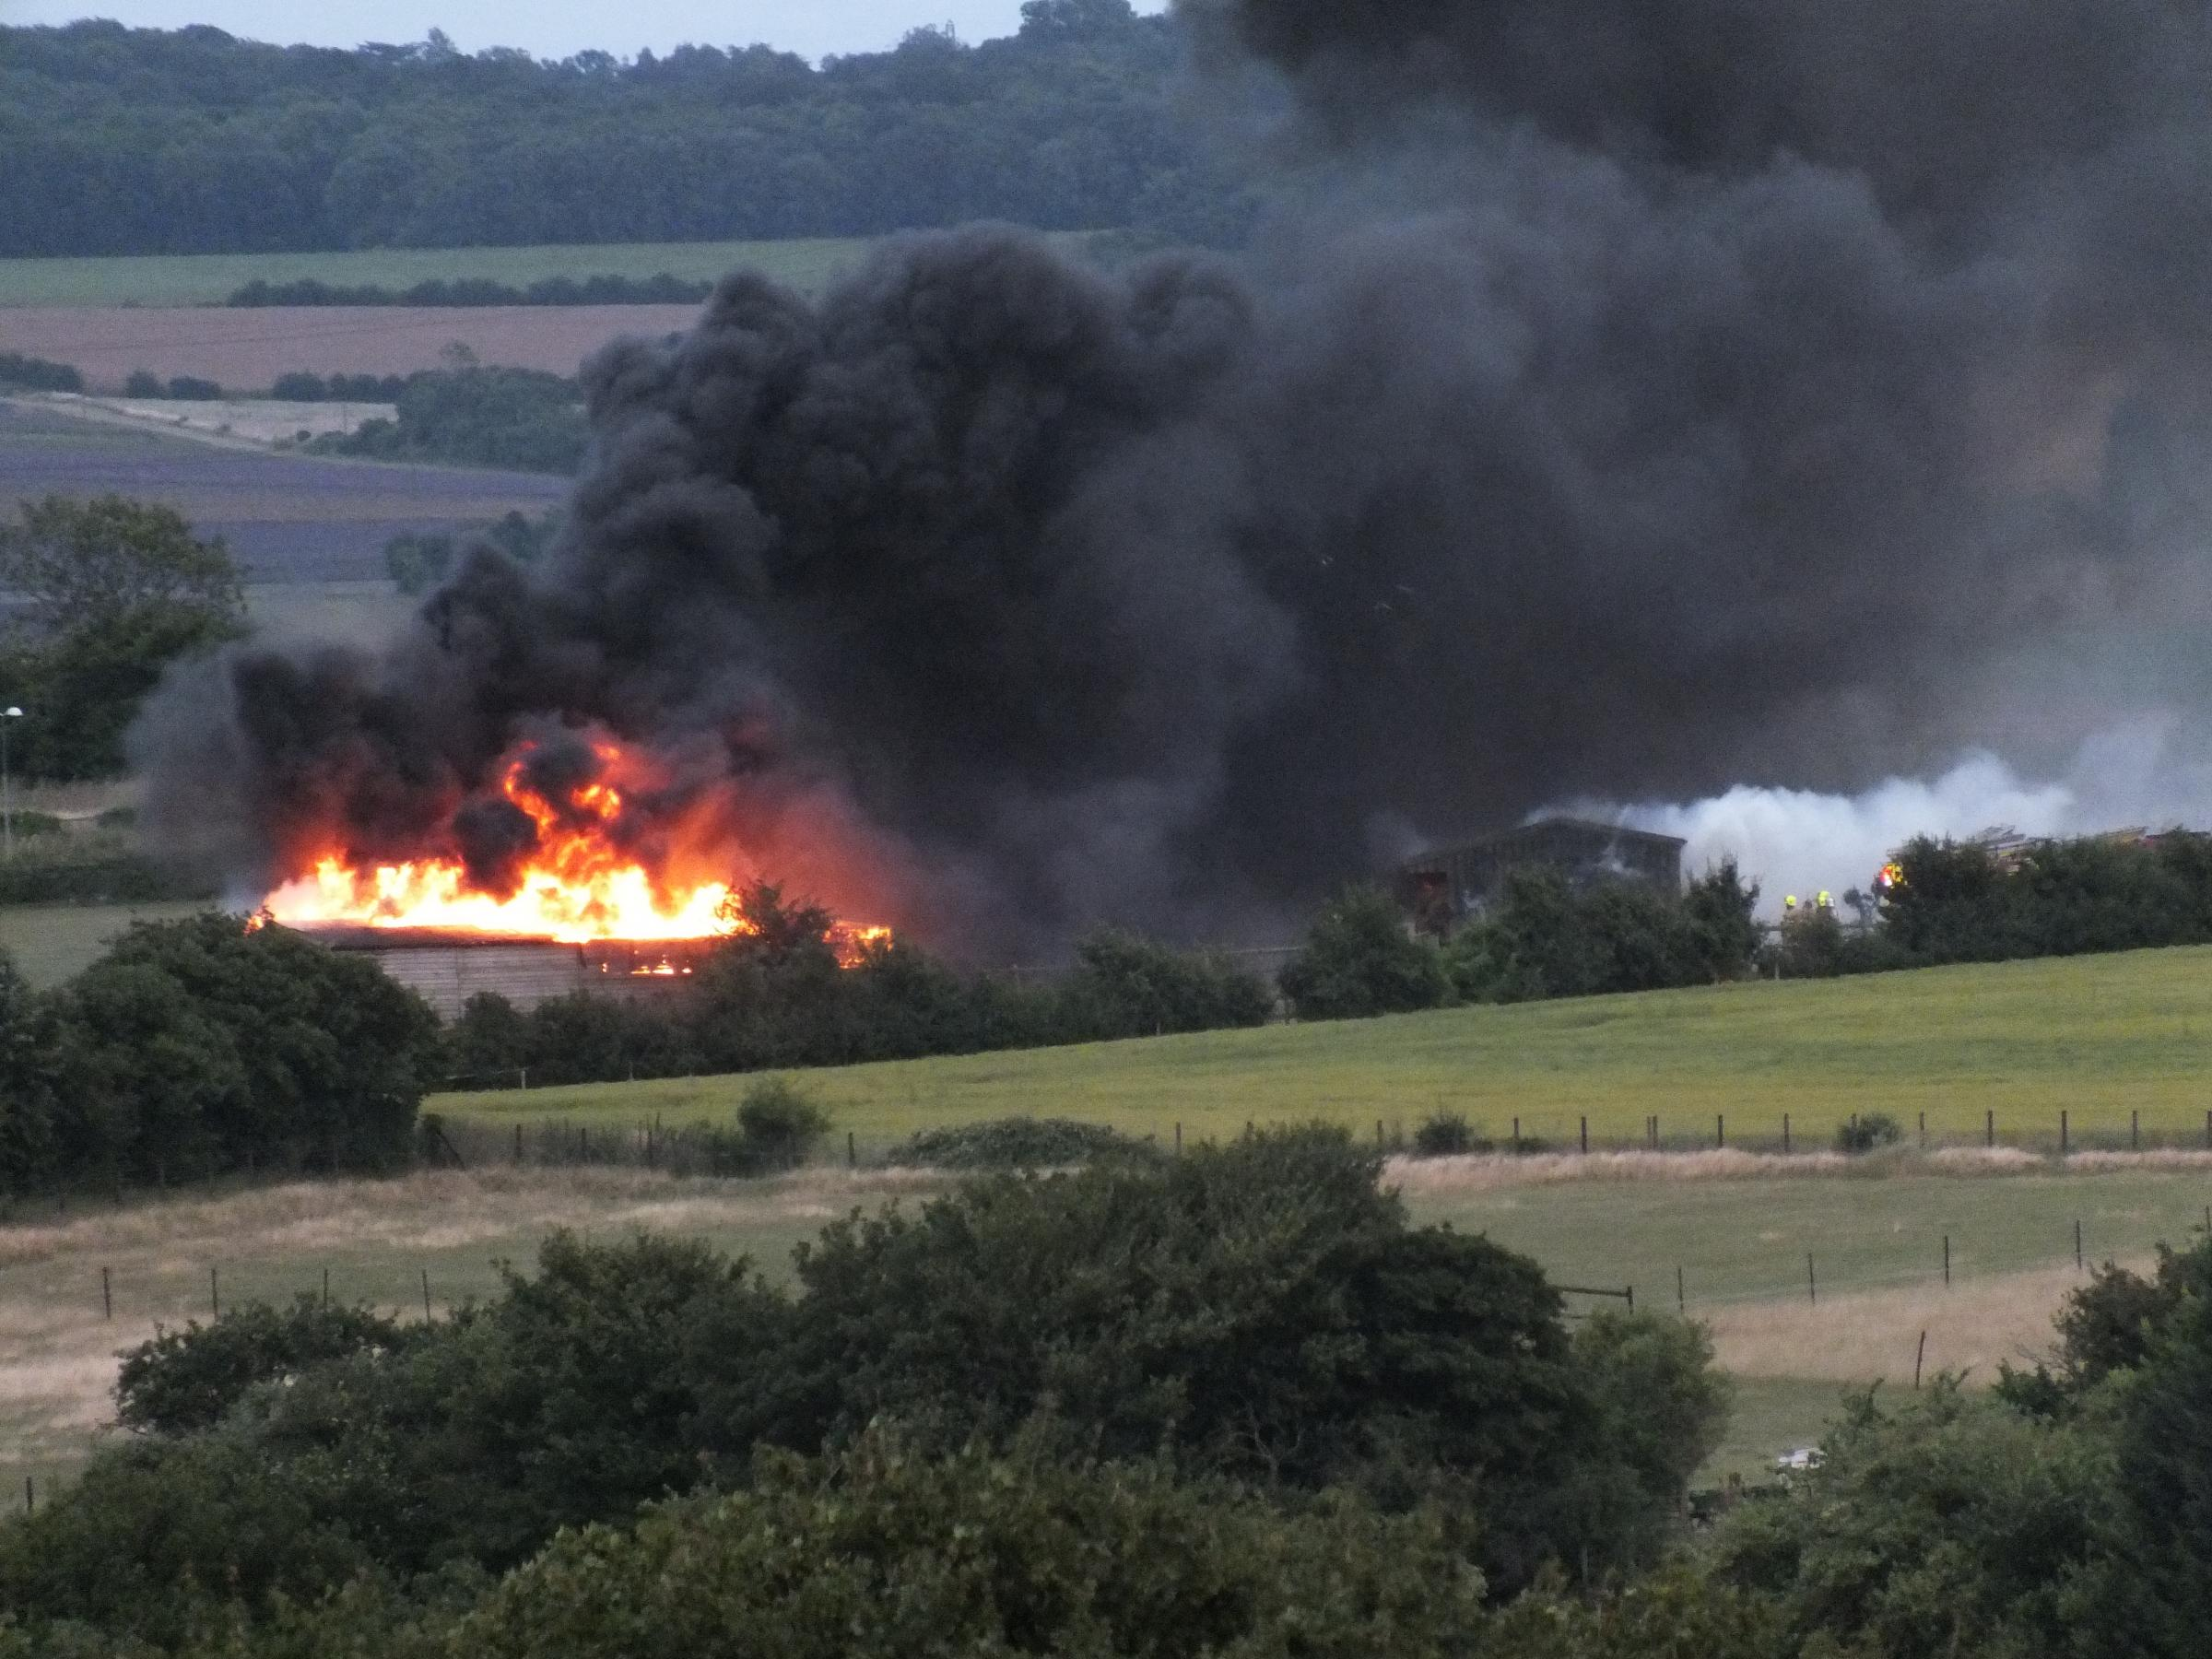 UPDATE: 'We are literally left with just a field'- Swanley stable destroyed after fire causes £50,000 of damage